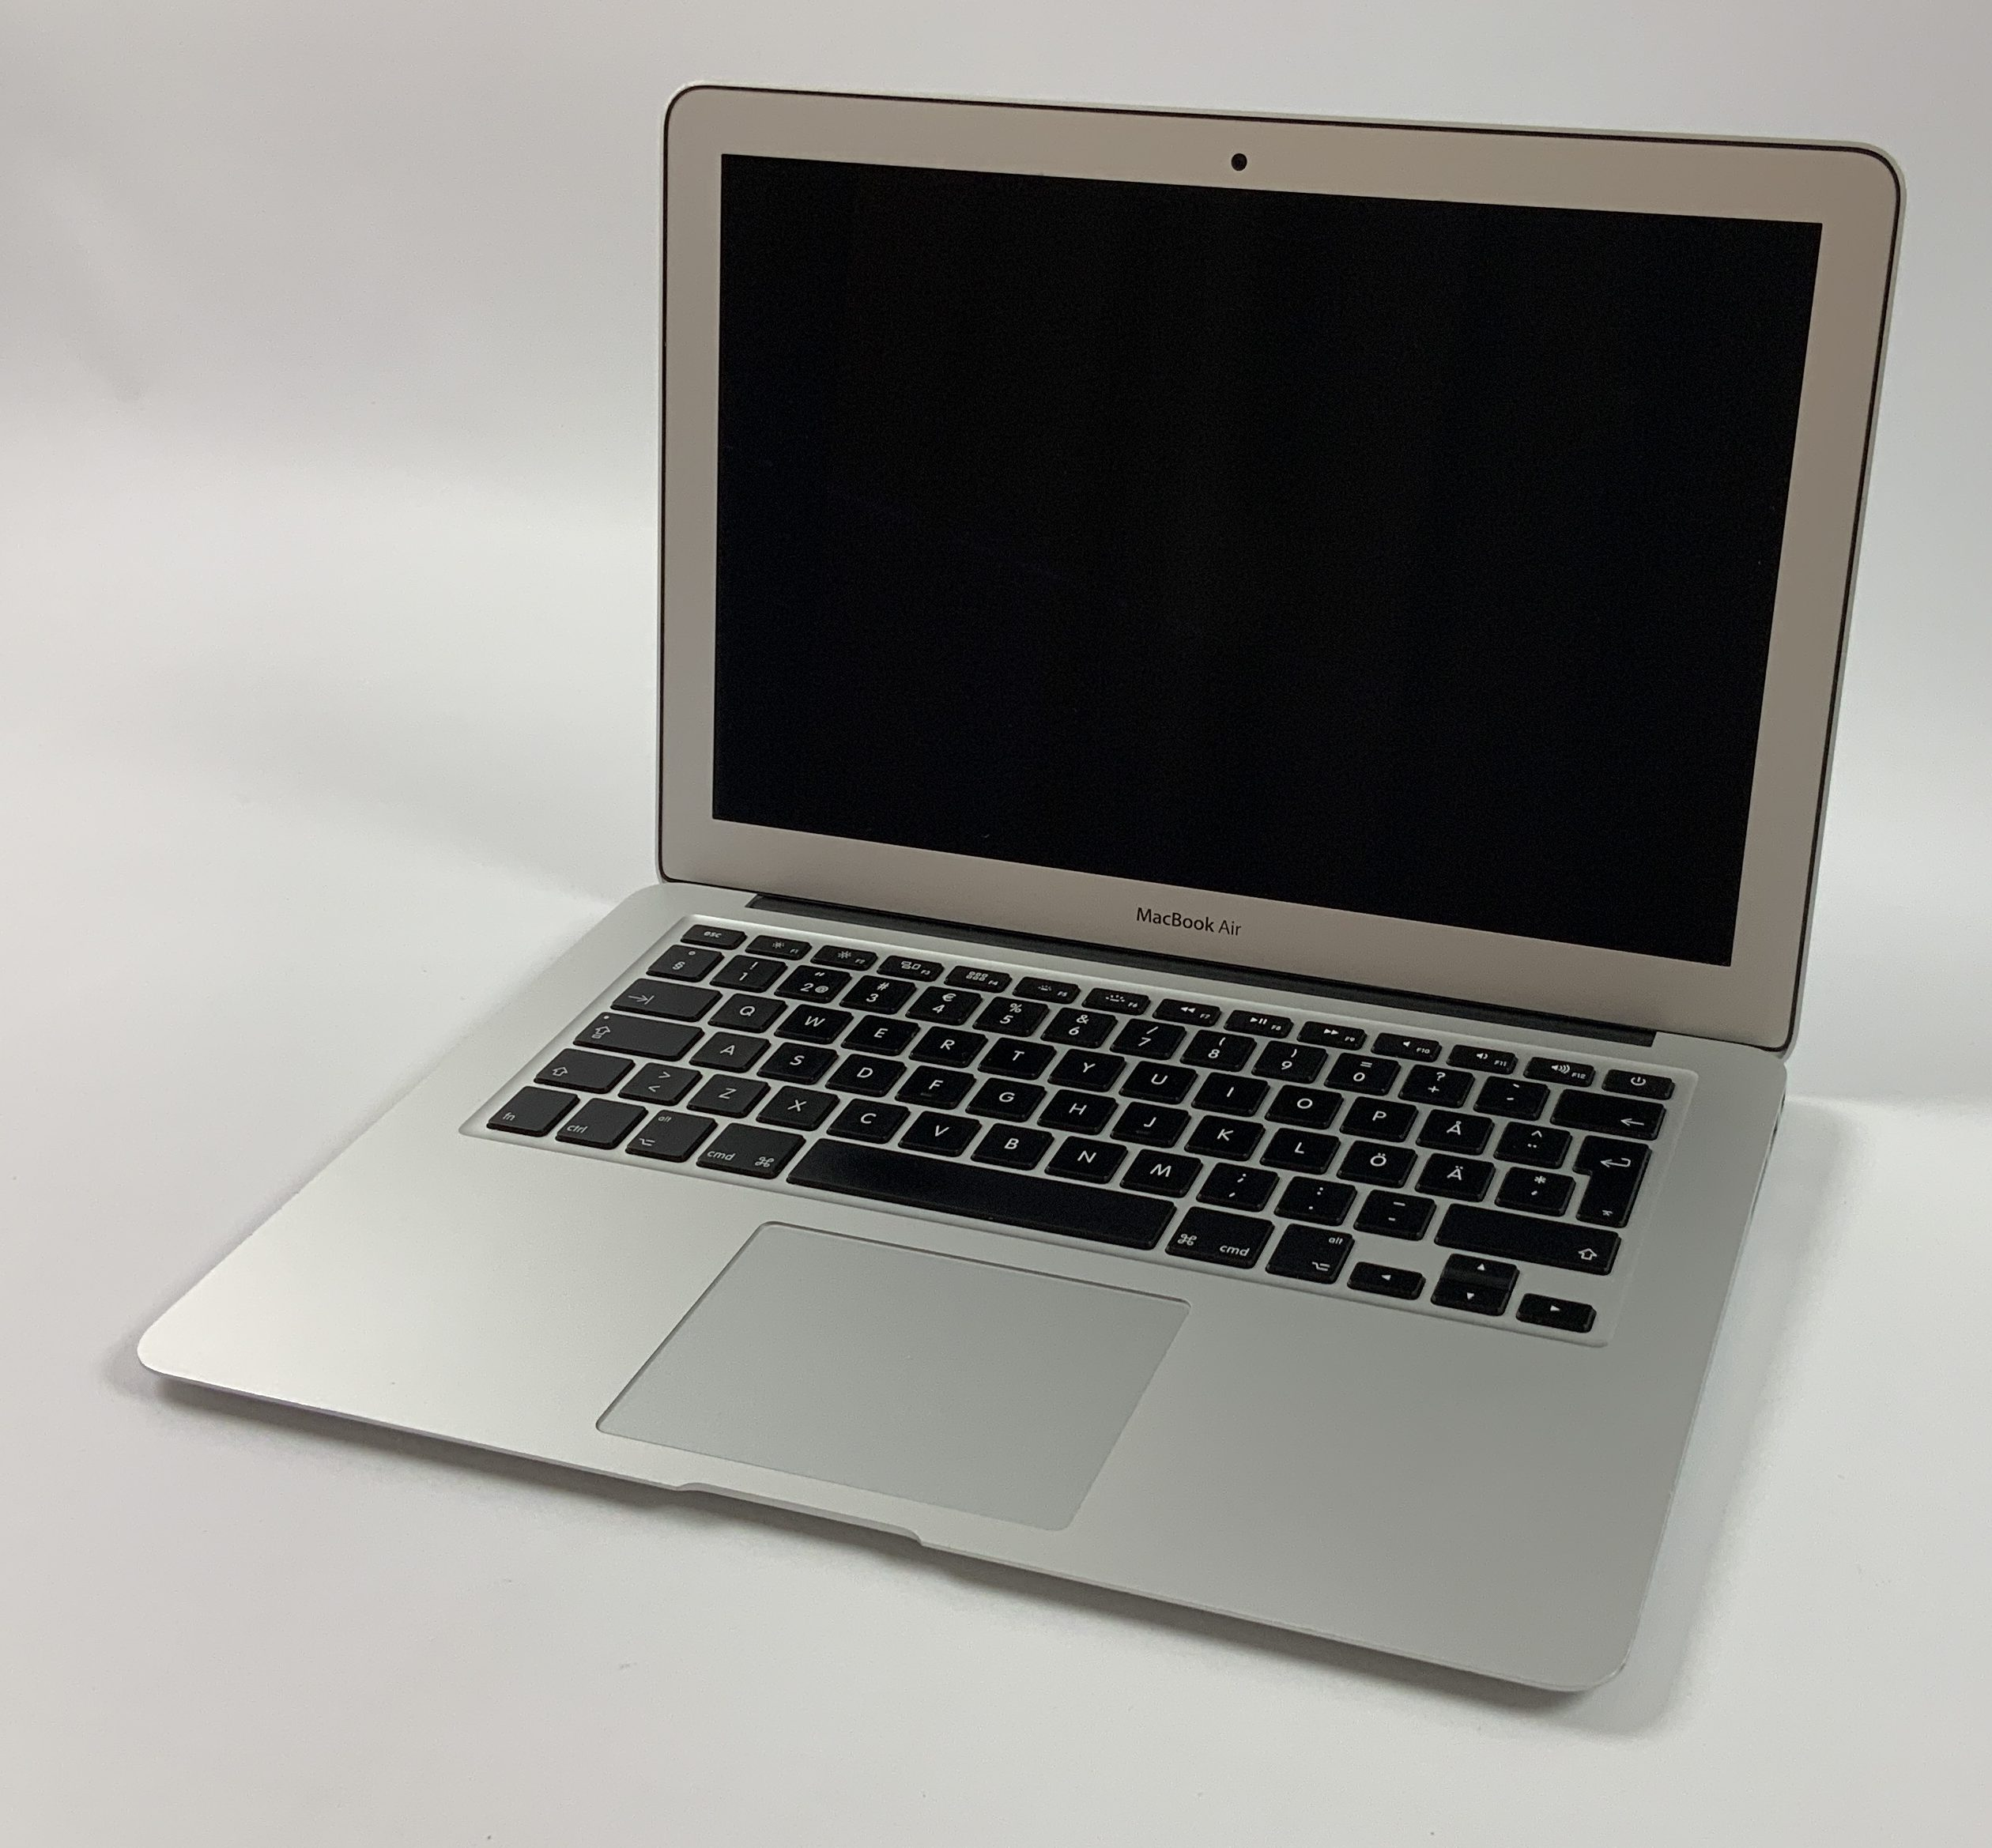 "MacBook Air 13"" Early 2015 (Intel Core i5 1.6 GHz 8 GB RAM 128 GB SSD), Intel Core i5 1.6 GHz, 8 GB RAM, 128 GB SSD, obraz 1"